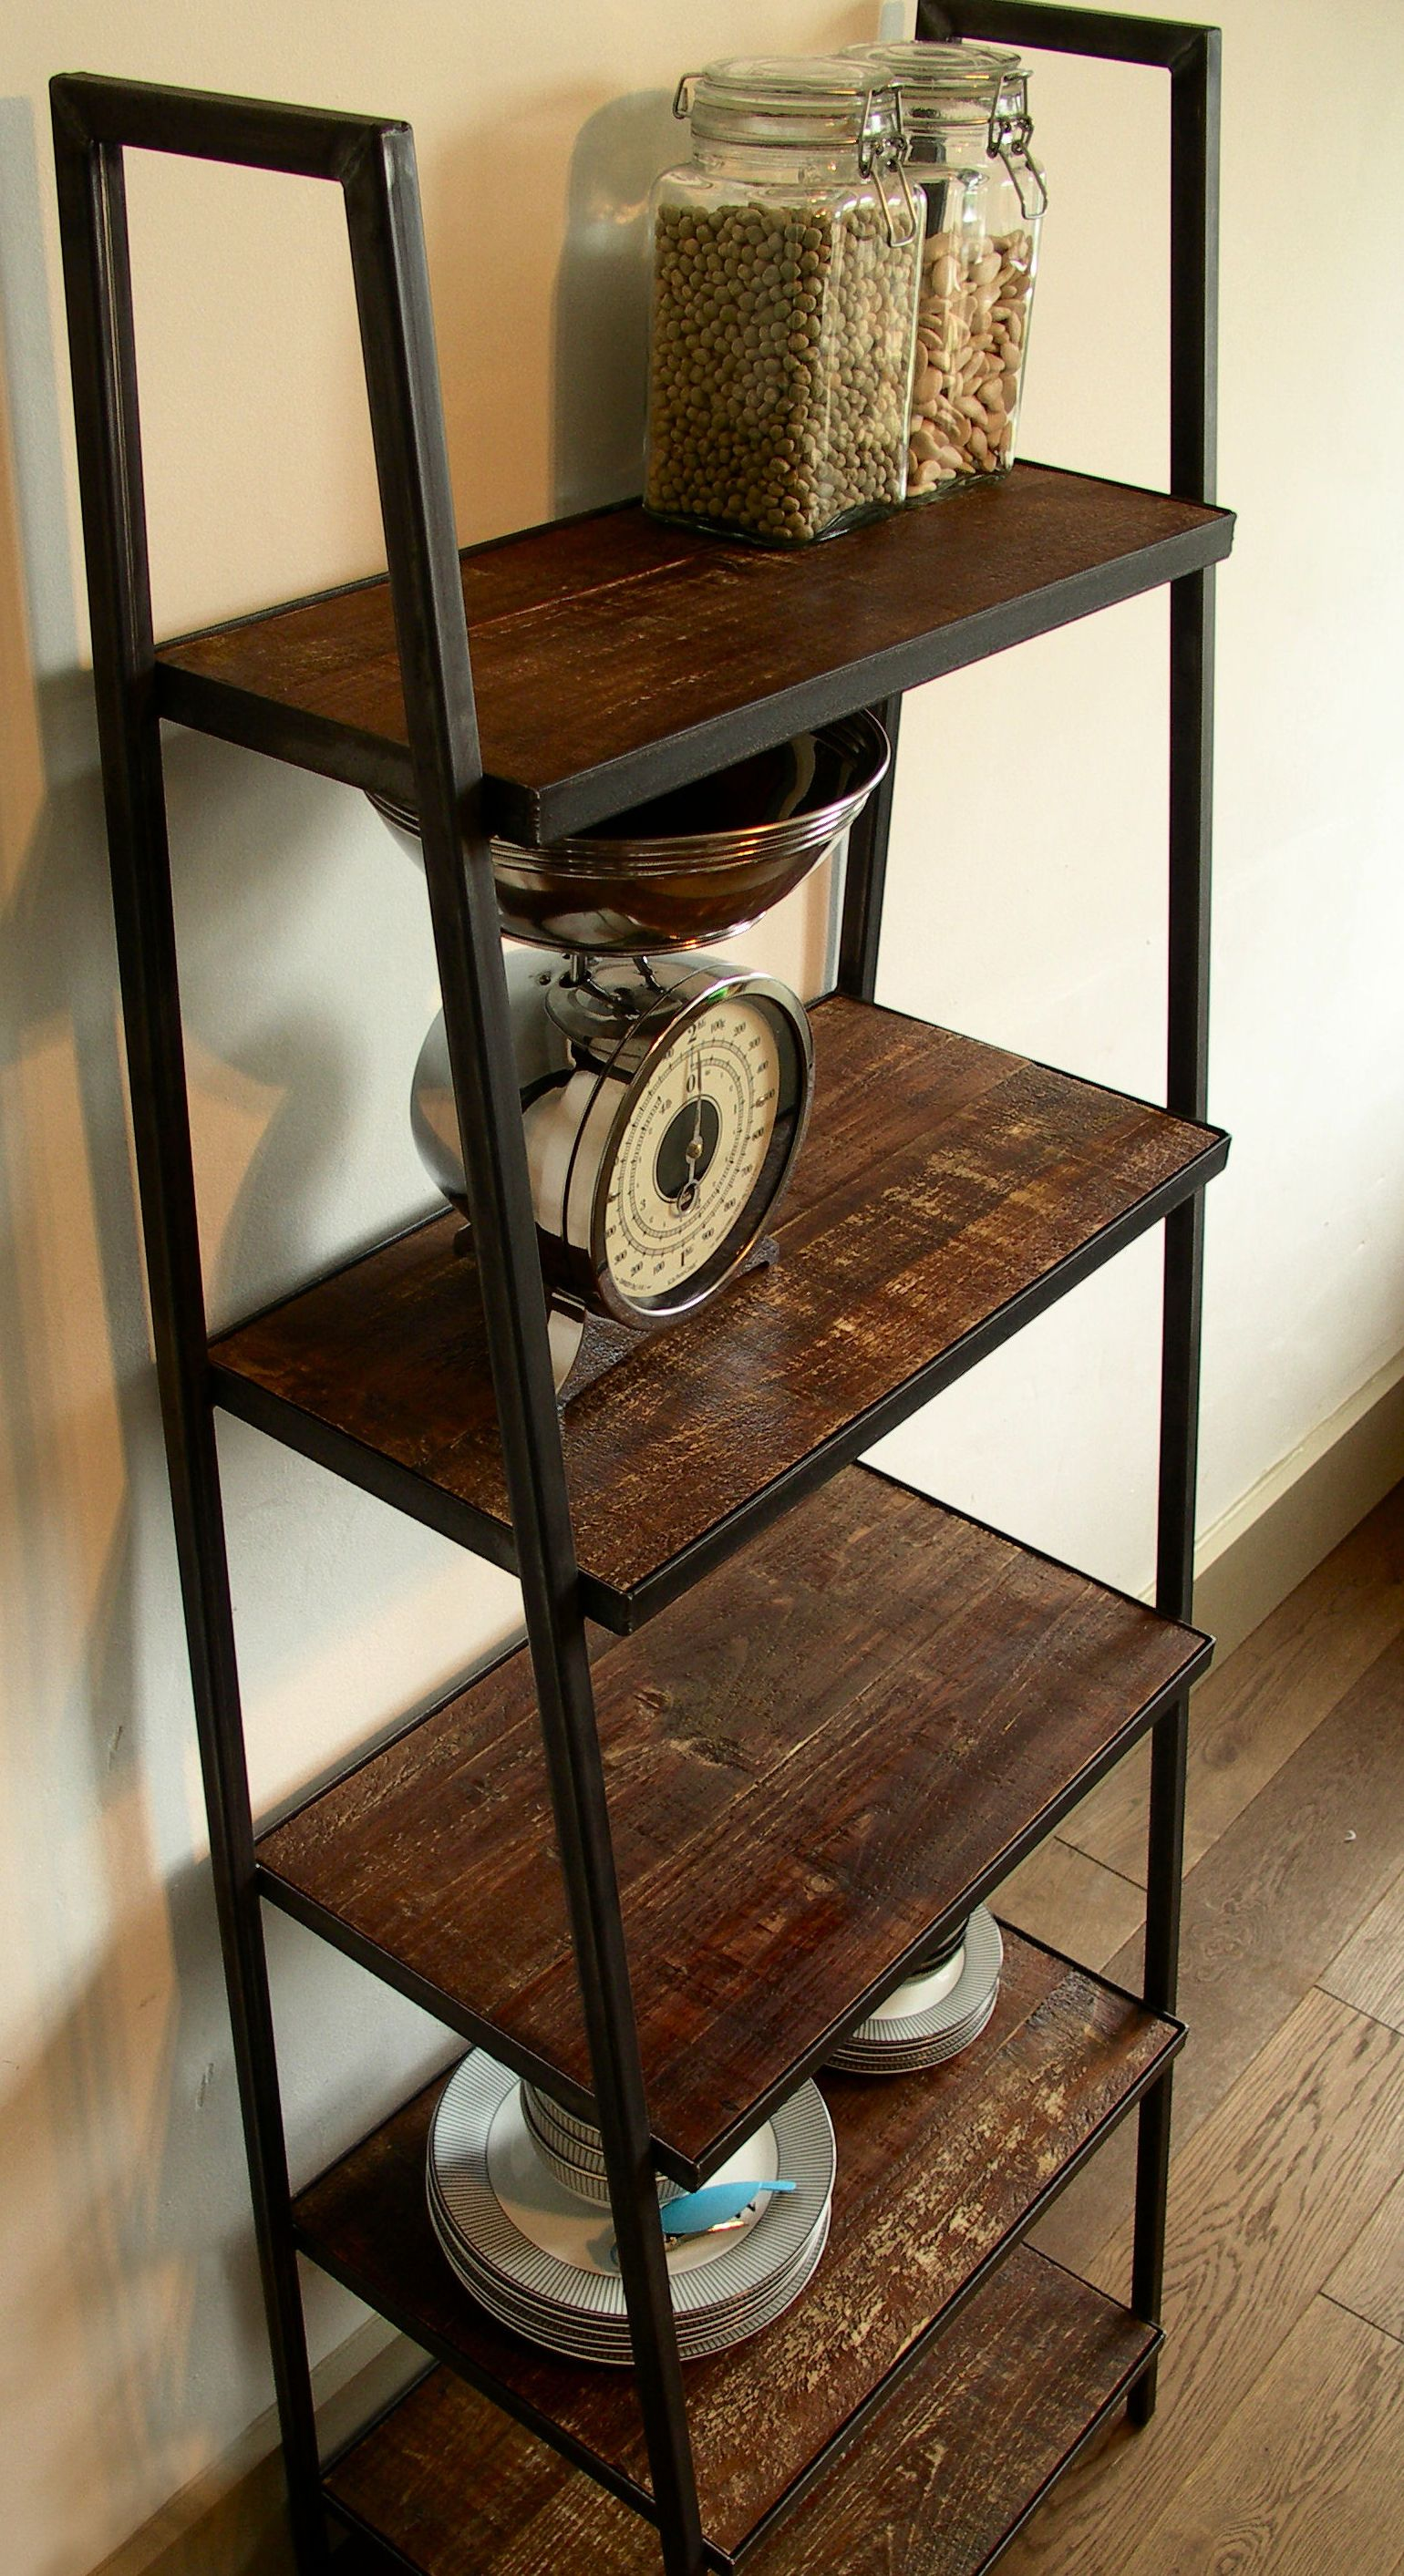 Ladder Shelving Unit With Distressed Timber #shelving #industrial #storage